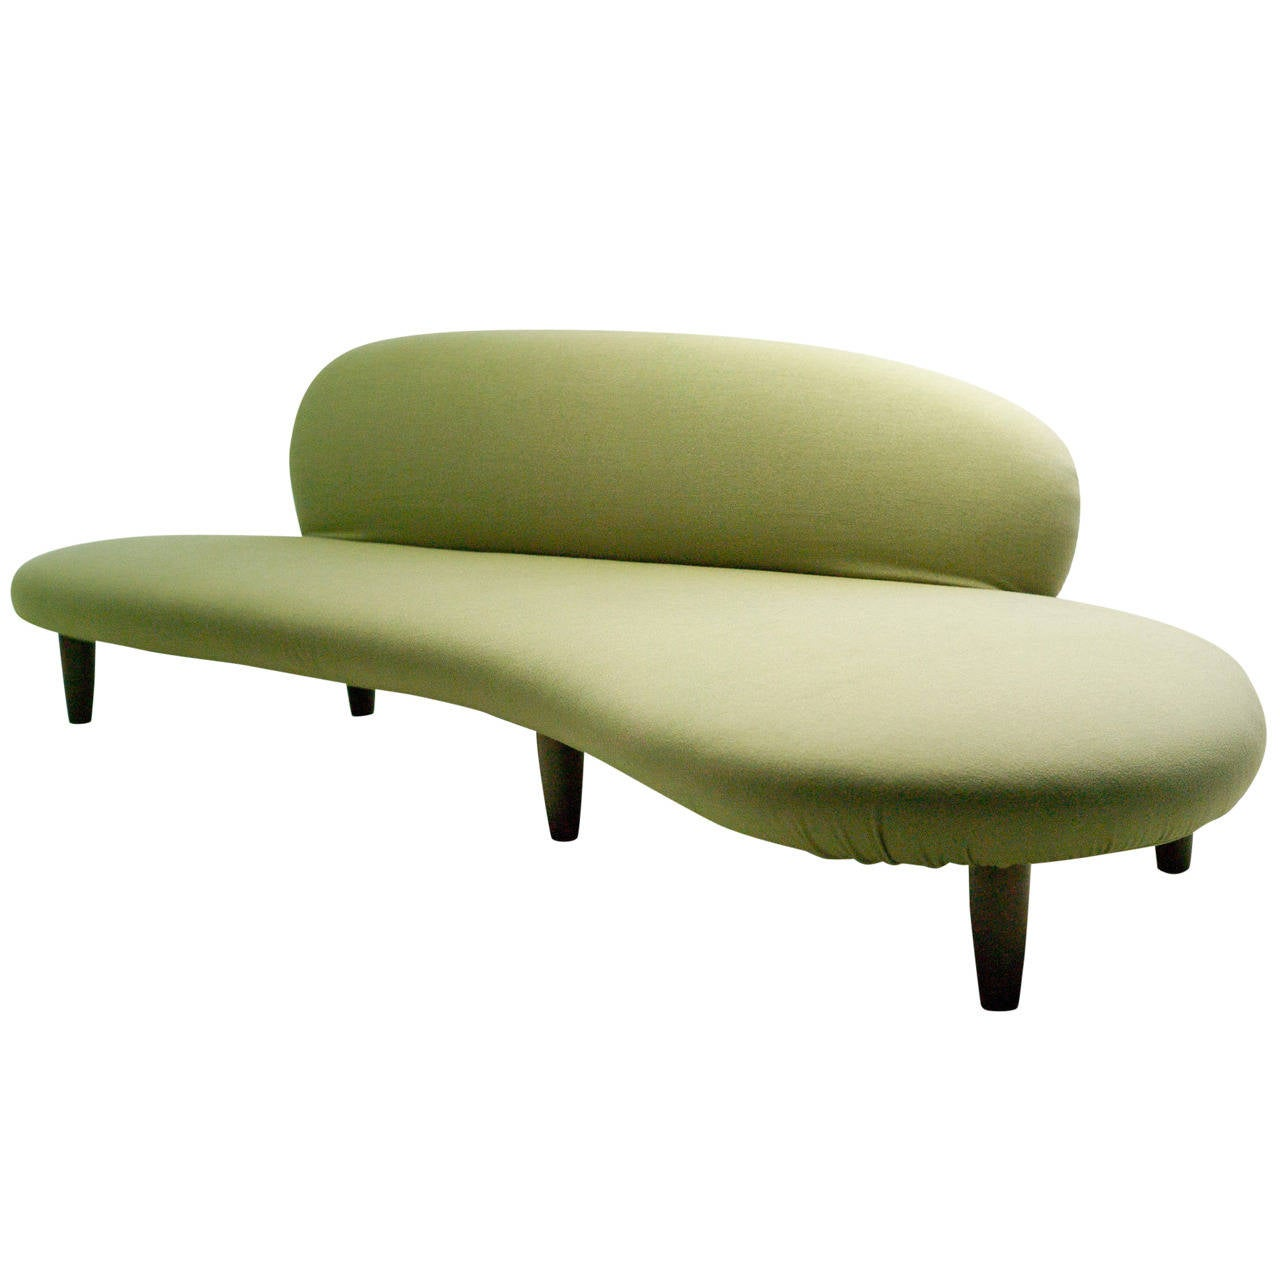 noguchi sofa reproduction single chair bed freeform ottoman rove concepts thesofa